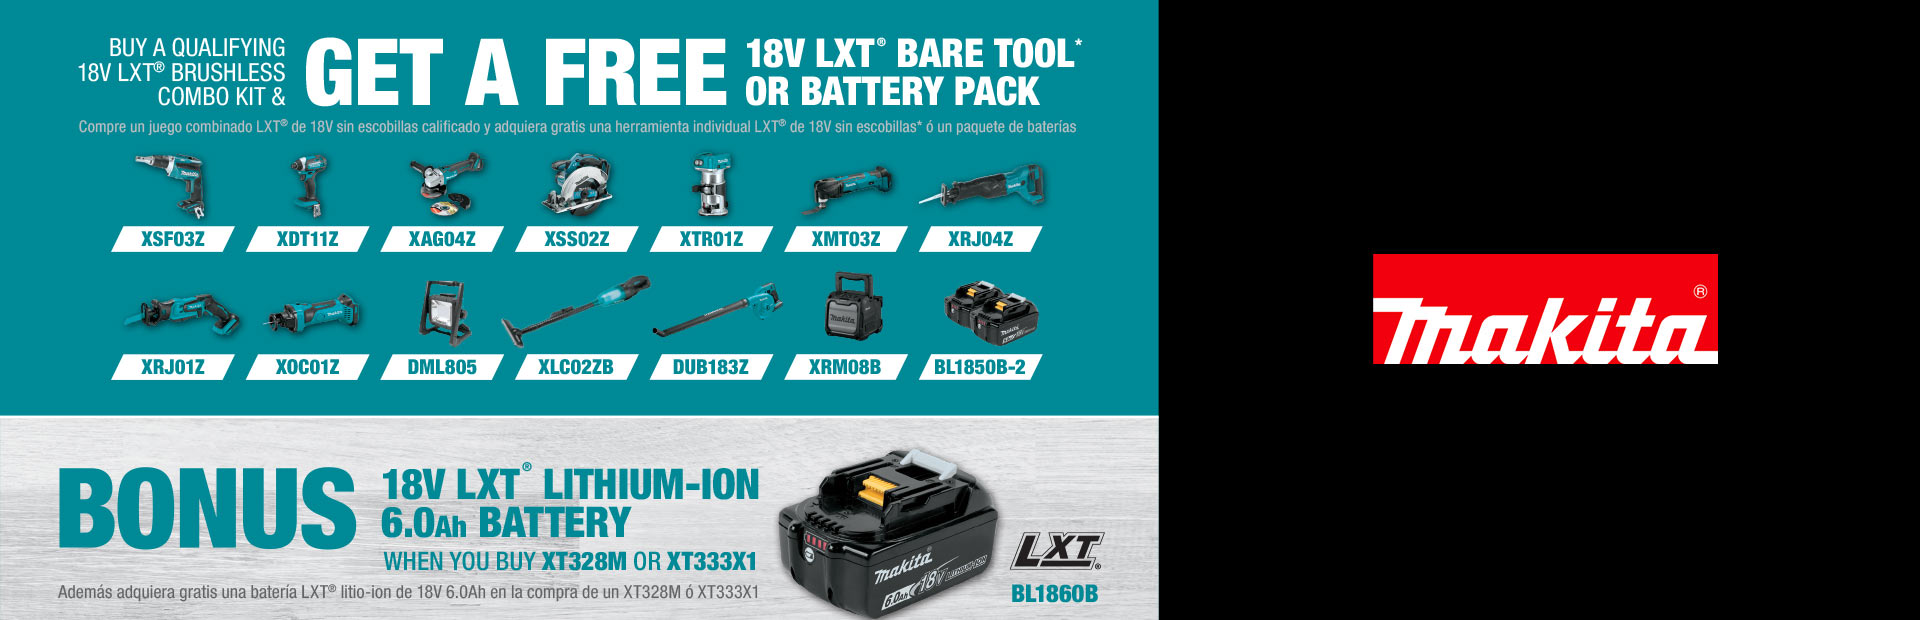 Makita: BUY A QUALIFYING 18V LXT® BRUSHLESS COMBO KI